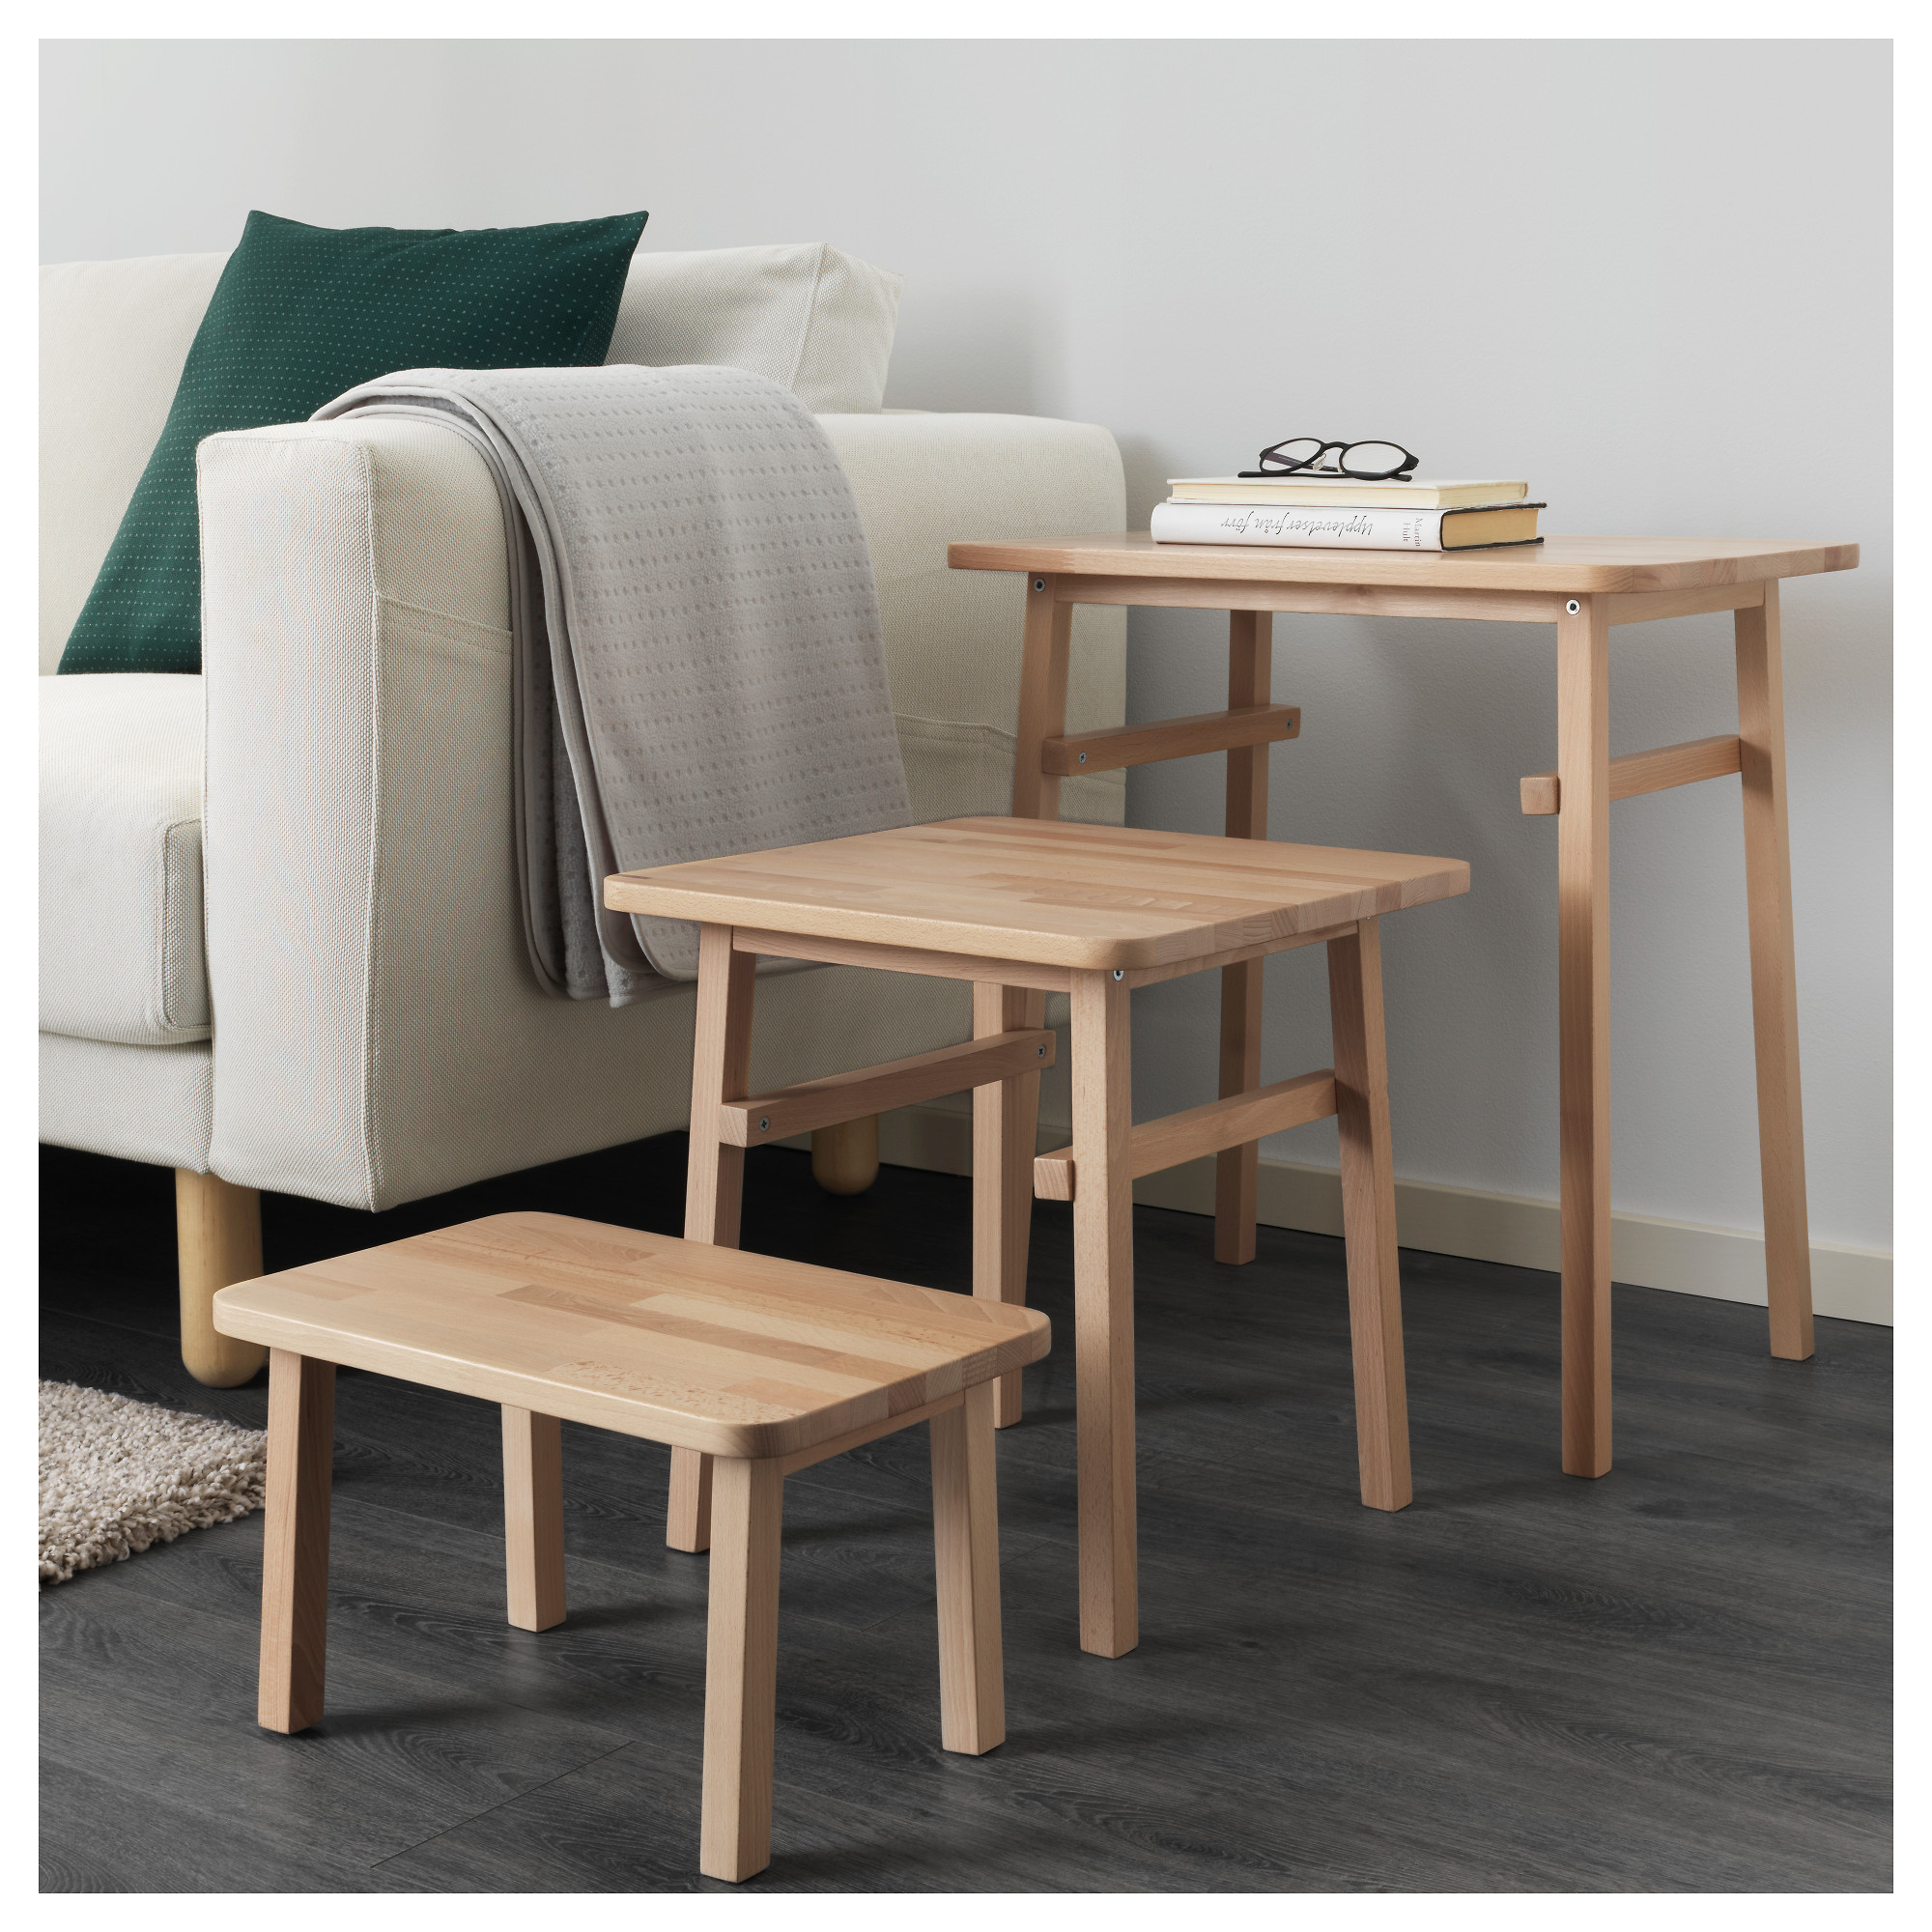 YPPERLIG Nest of tables set of 3 IKEA